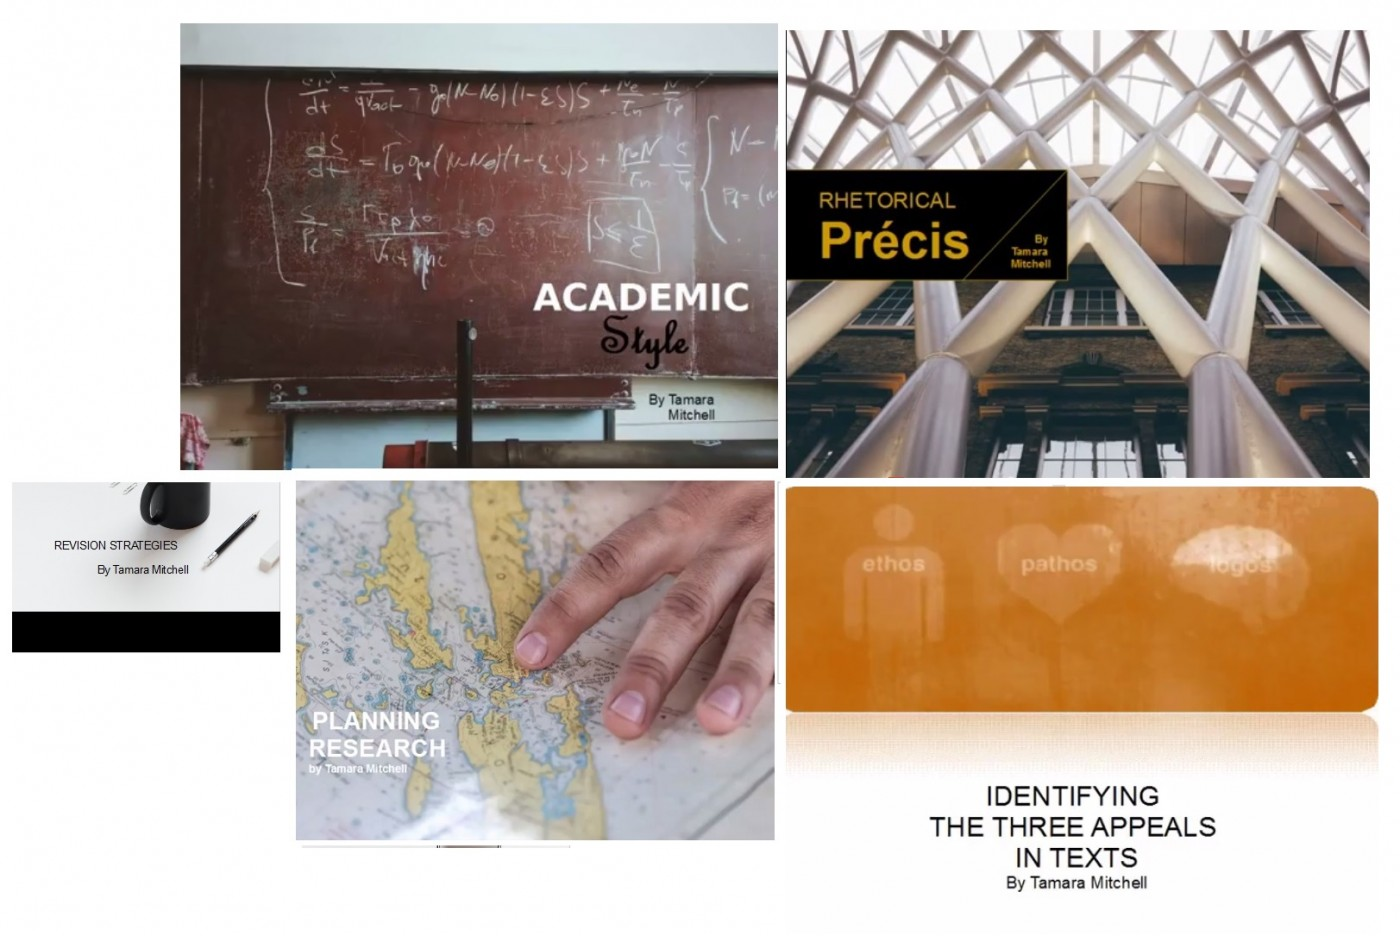 Collage of five academic tutorial introductory images: Academic Style, Rhetorical Precis, Aristotle's 3 Appeals, and Revision Strategies.